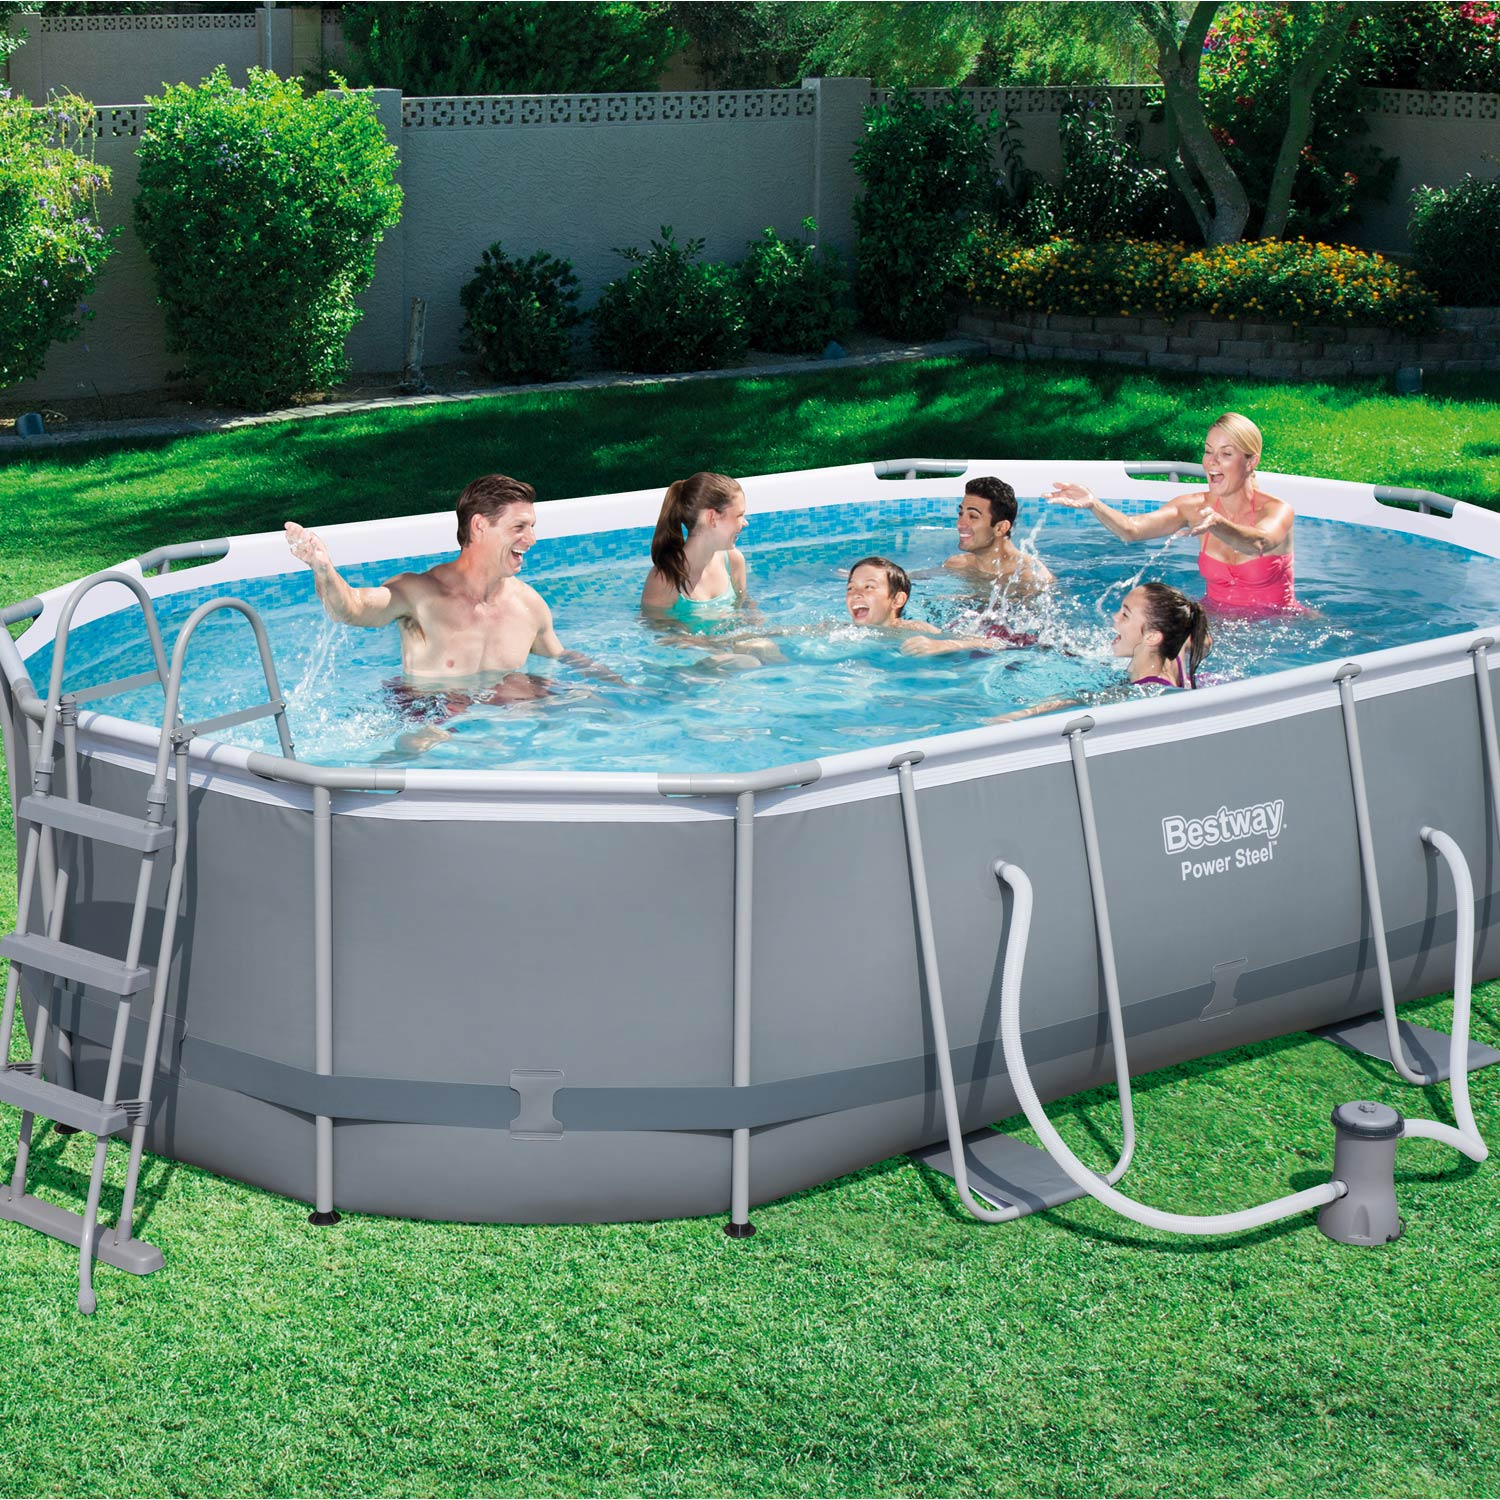 Piscine hors sol autoportante tubulaire bestway l x for Piscine hexagonale hors sol